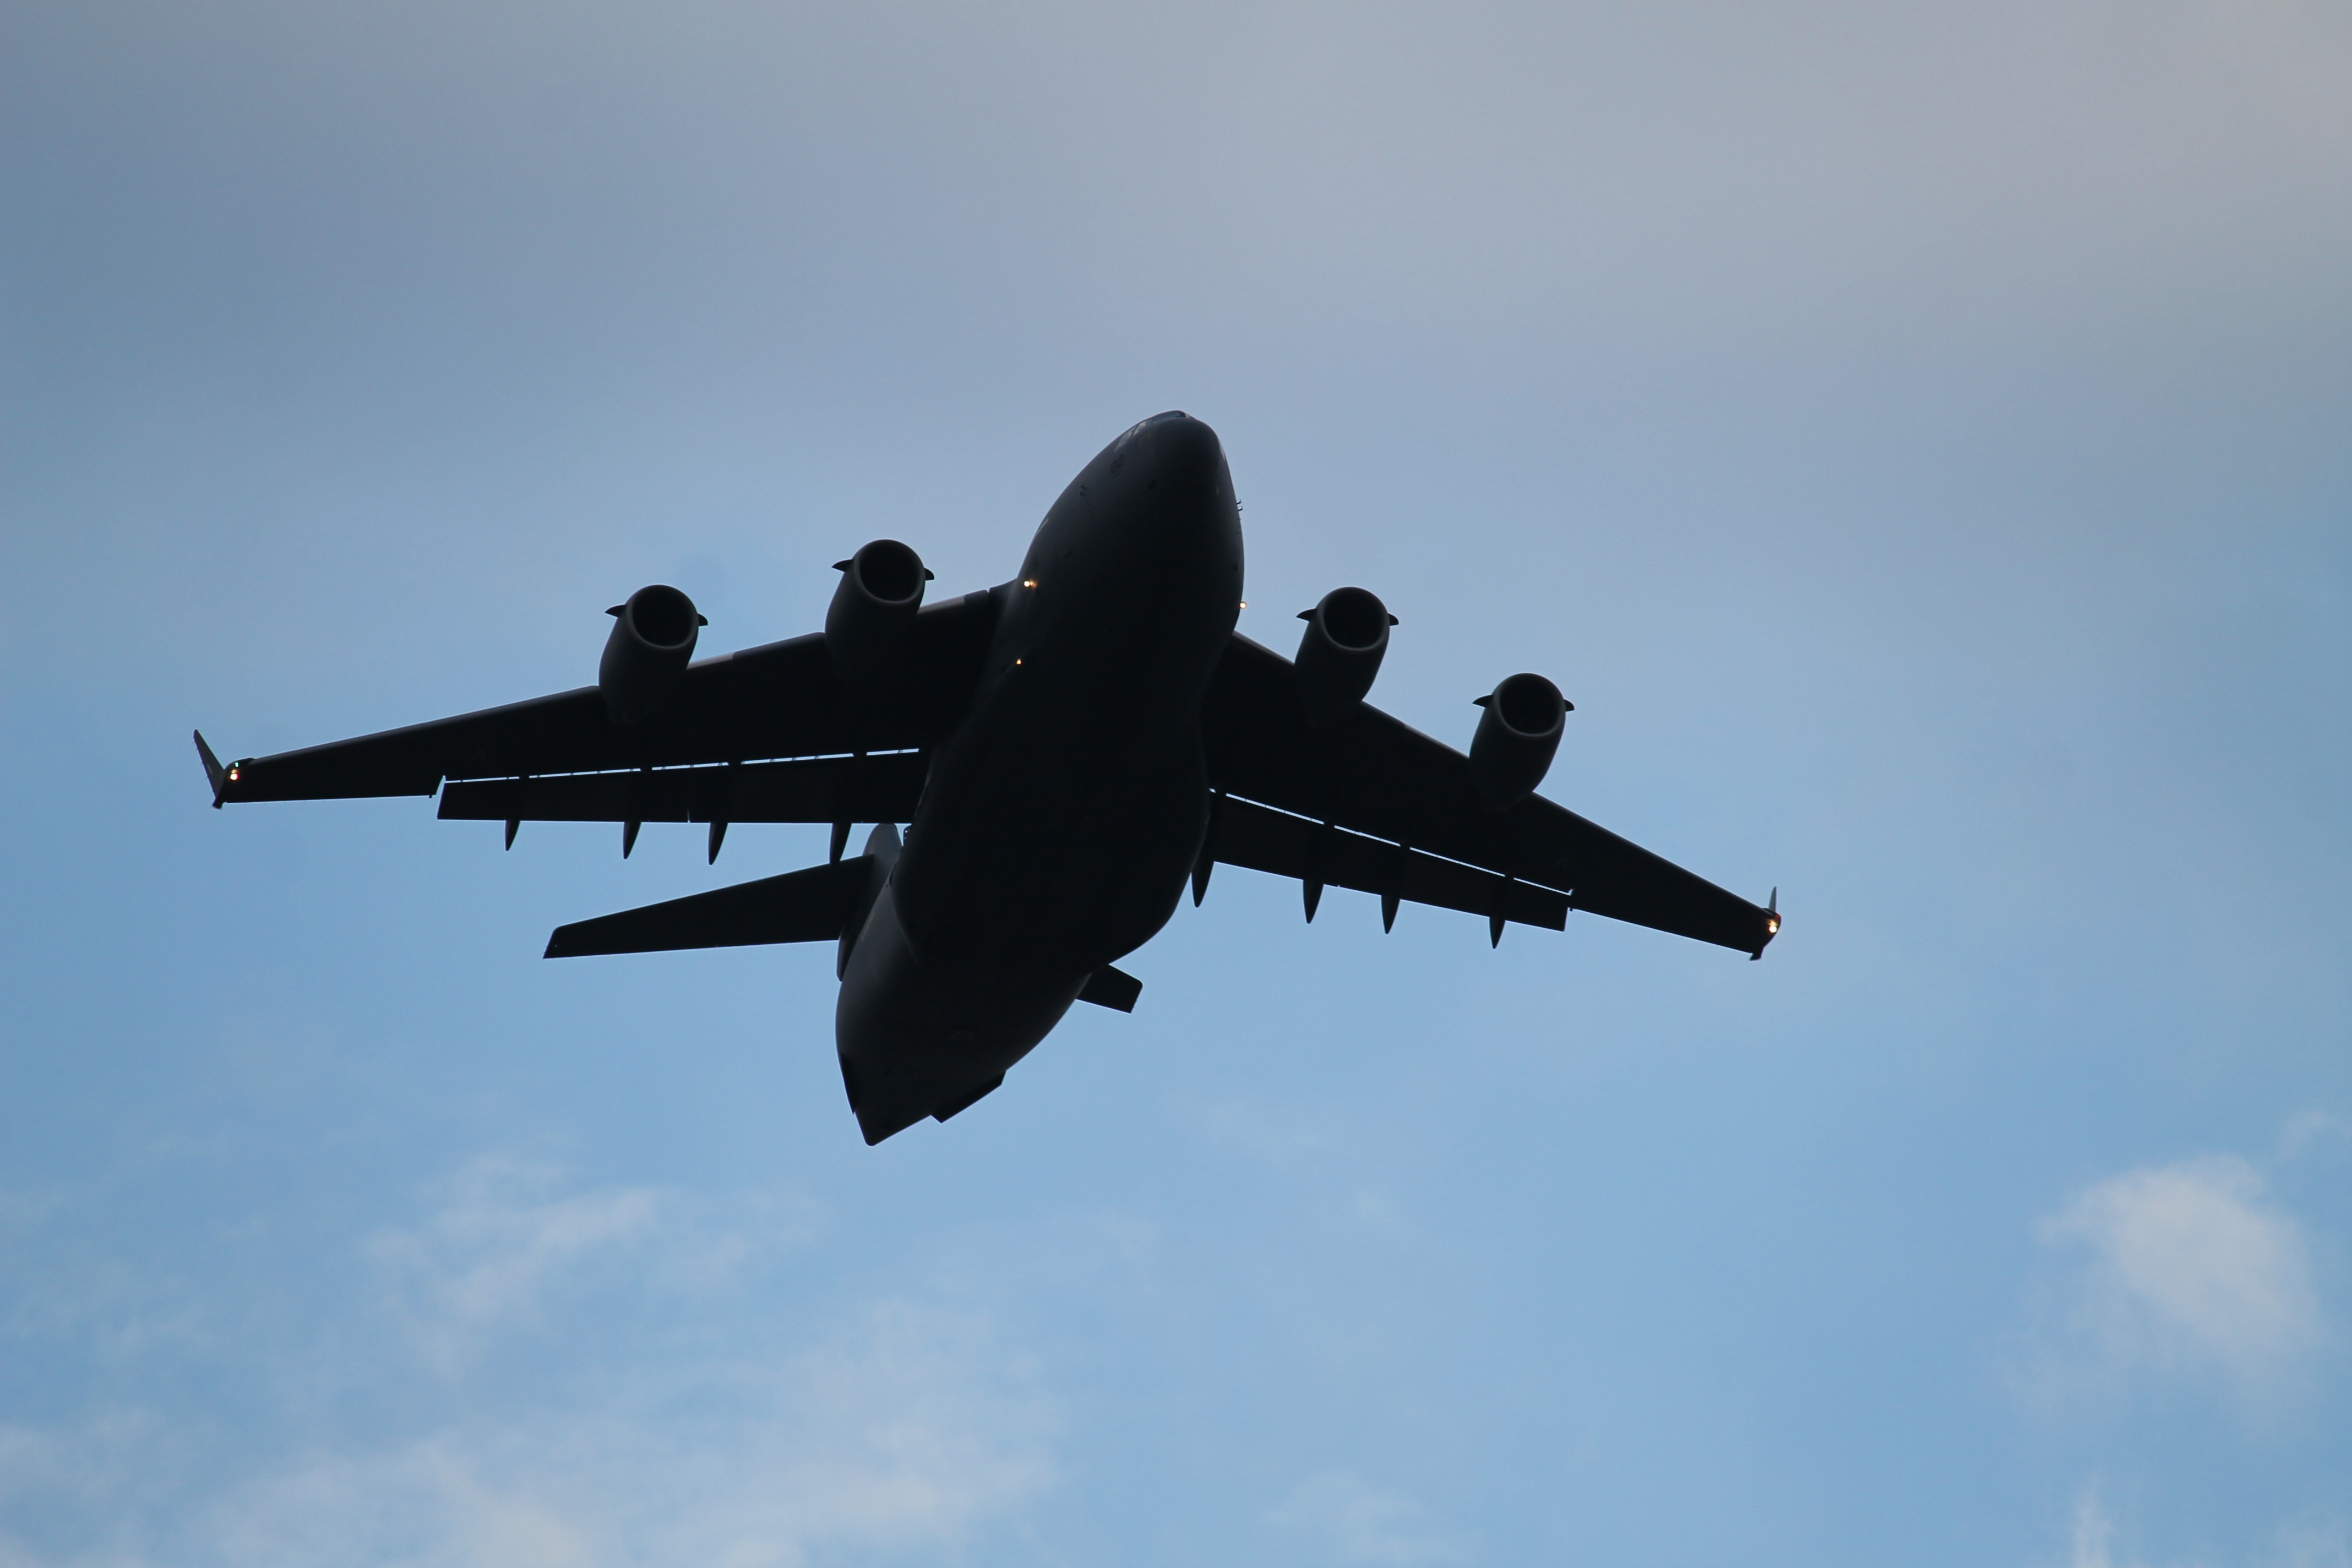 A C-17 flies over a drop zone at Bezmer Air Base, Bulgaria, at dusk on July 18. Eleven C-130s and two C-17s passed over the airfield, dropping paratroopers from the 173rd Airborne Brigade Combat Team based out of Vicenza, Italy, along with others from Portugal and Canada as part of Swift Response, an exercise within Saber Guardian. (Jed Judson/Staff)